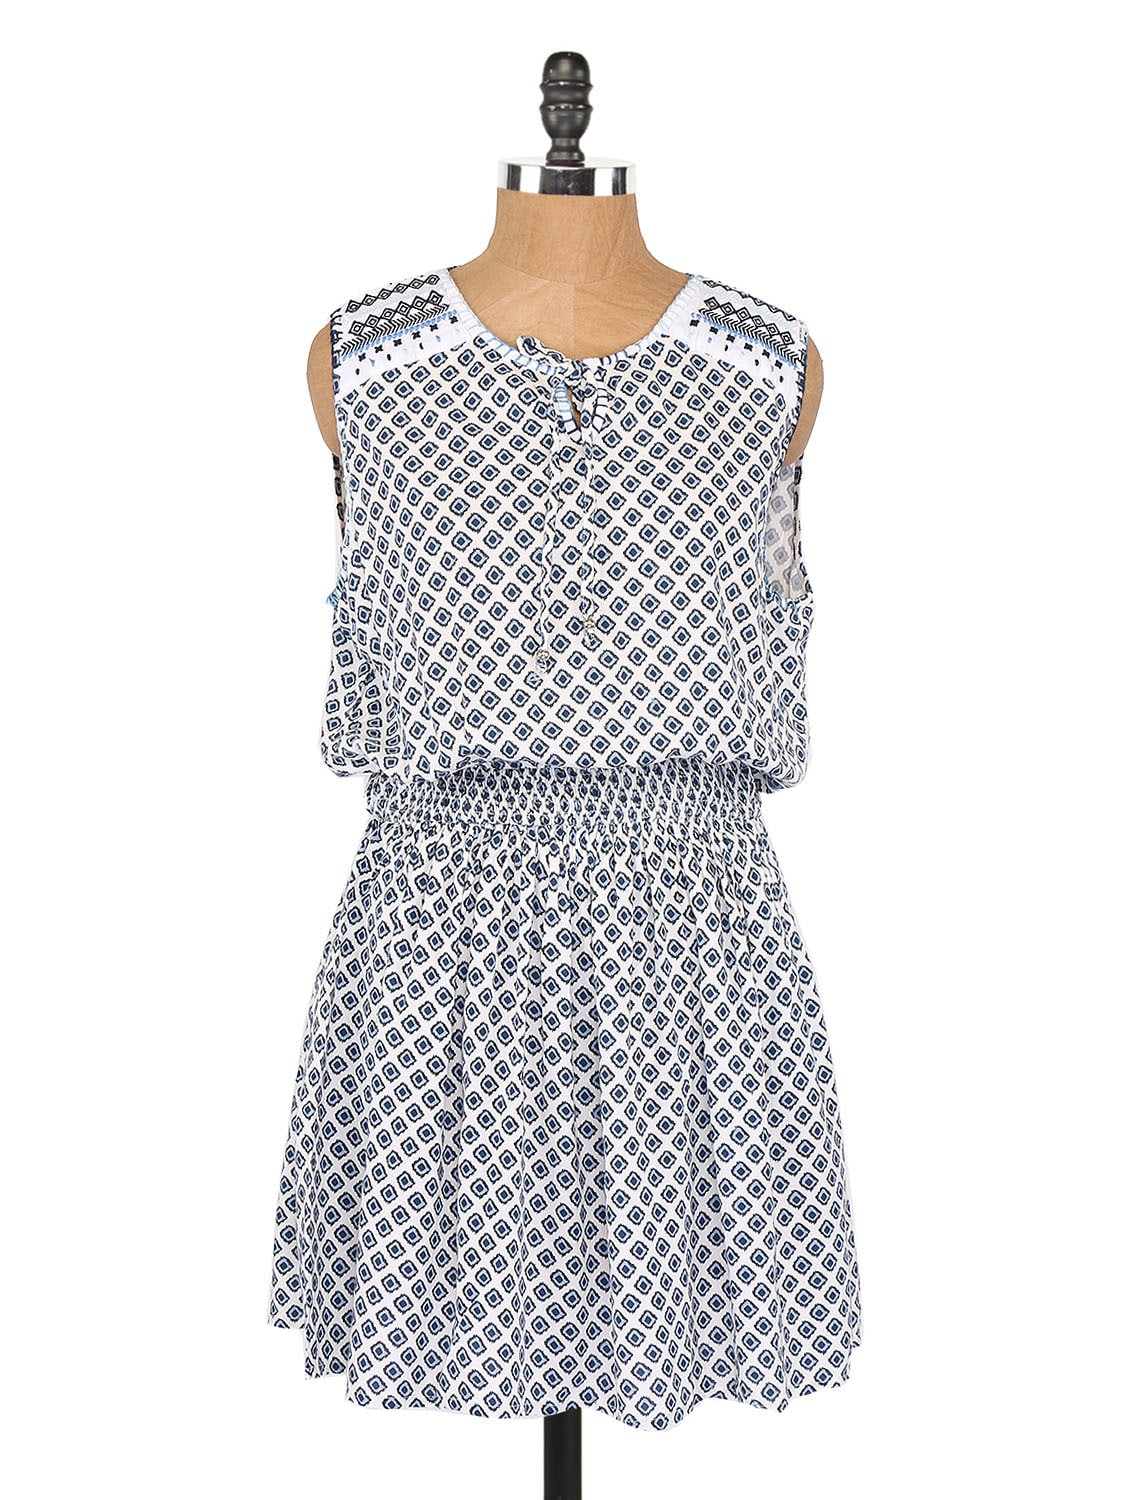 Printed Sleeveless Short Dress - Globus